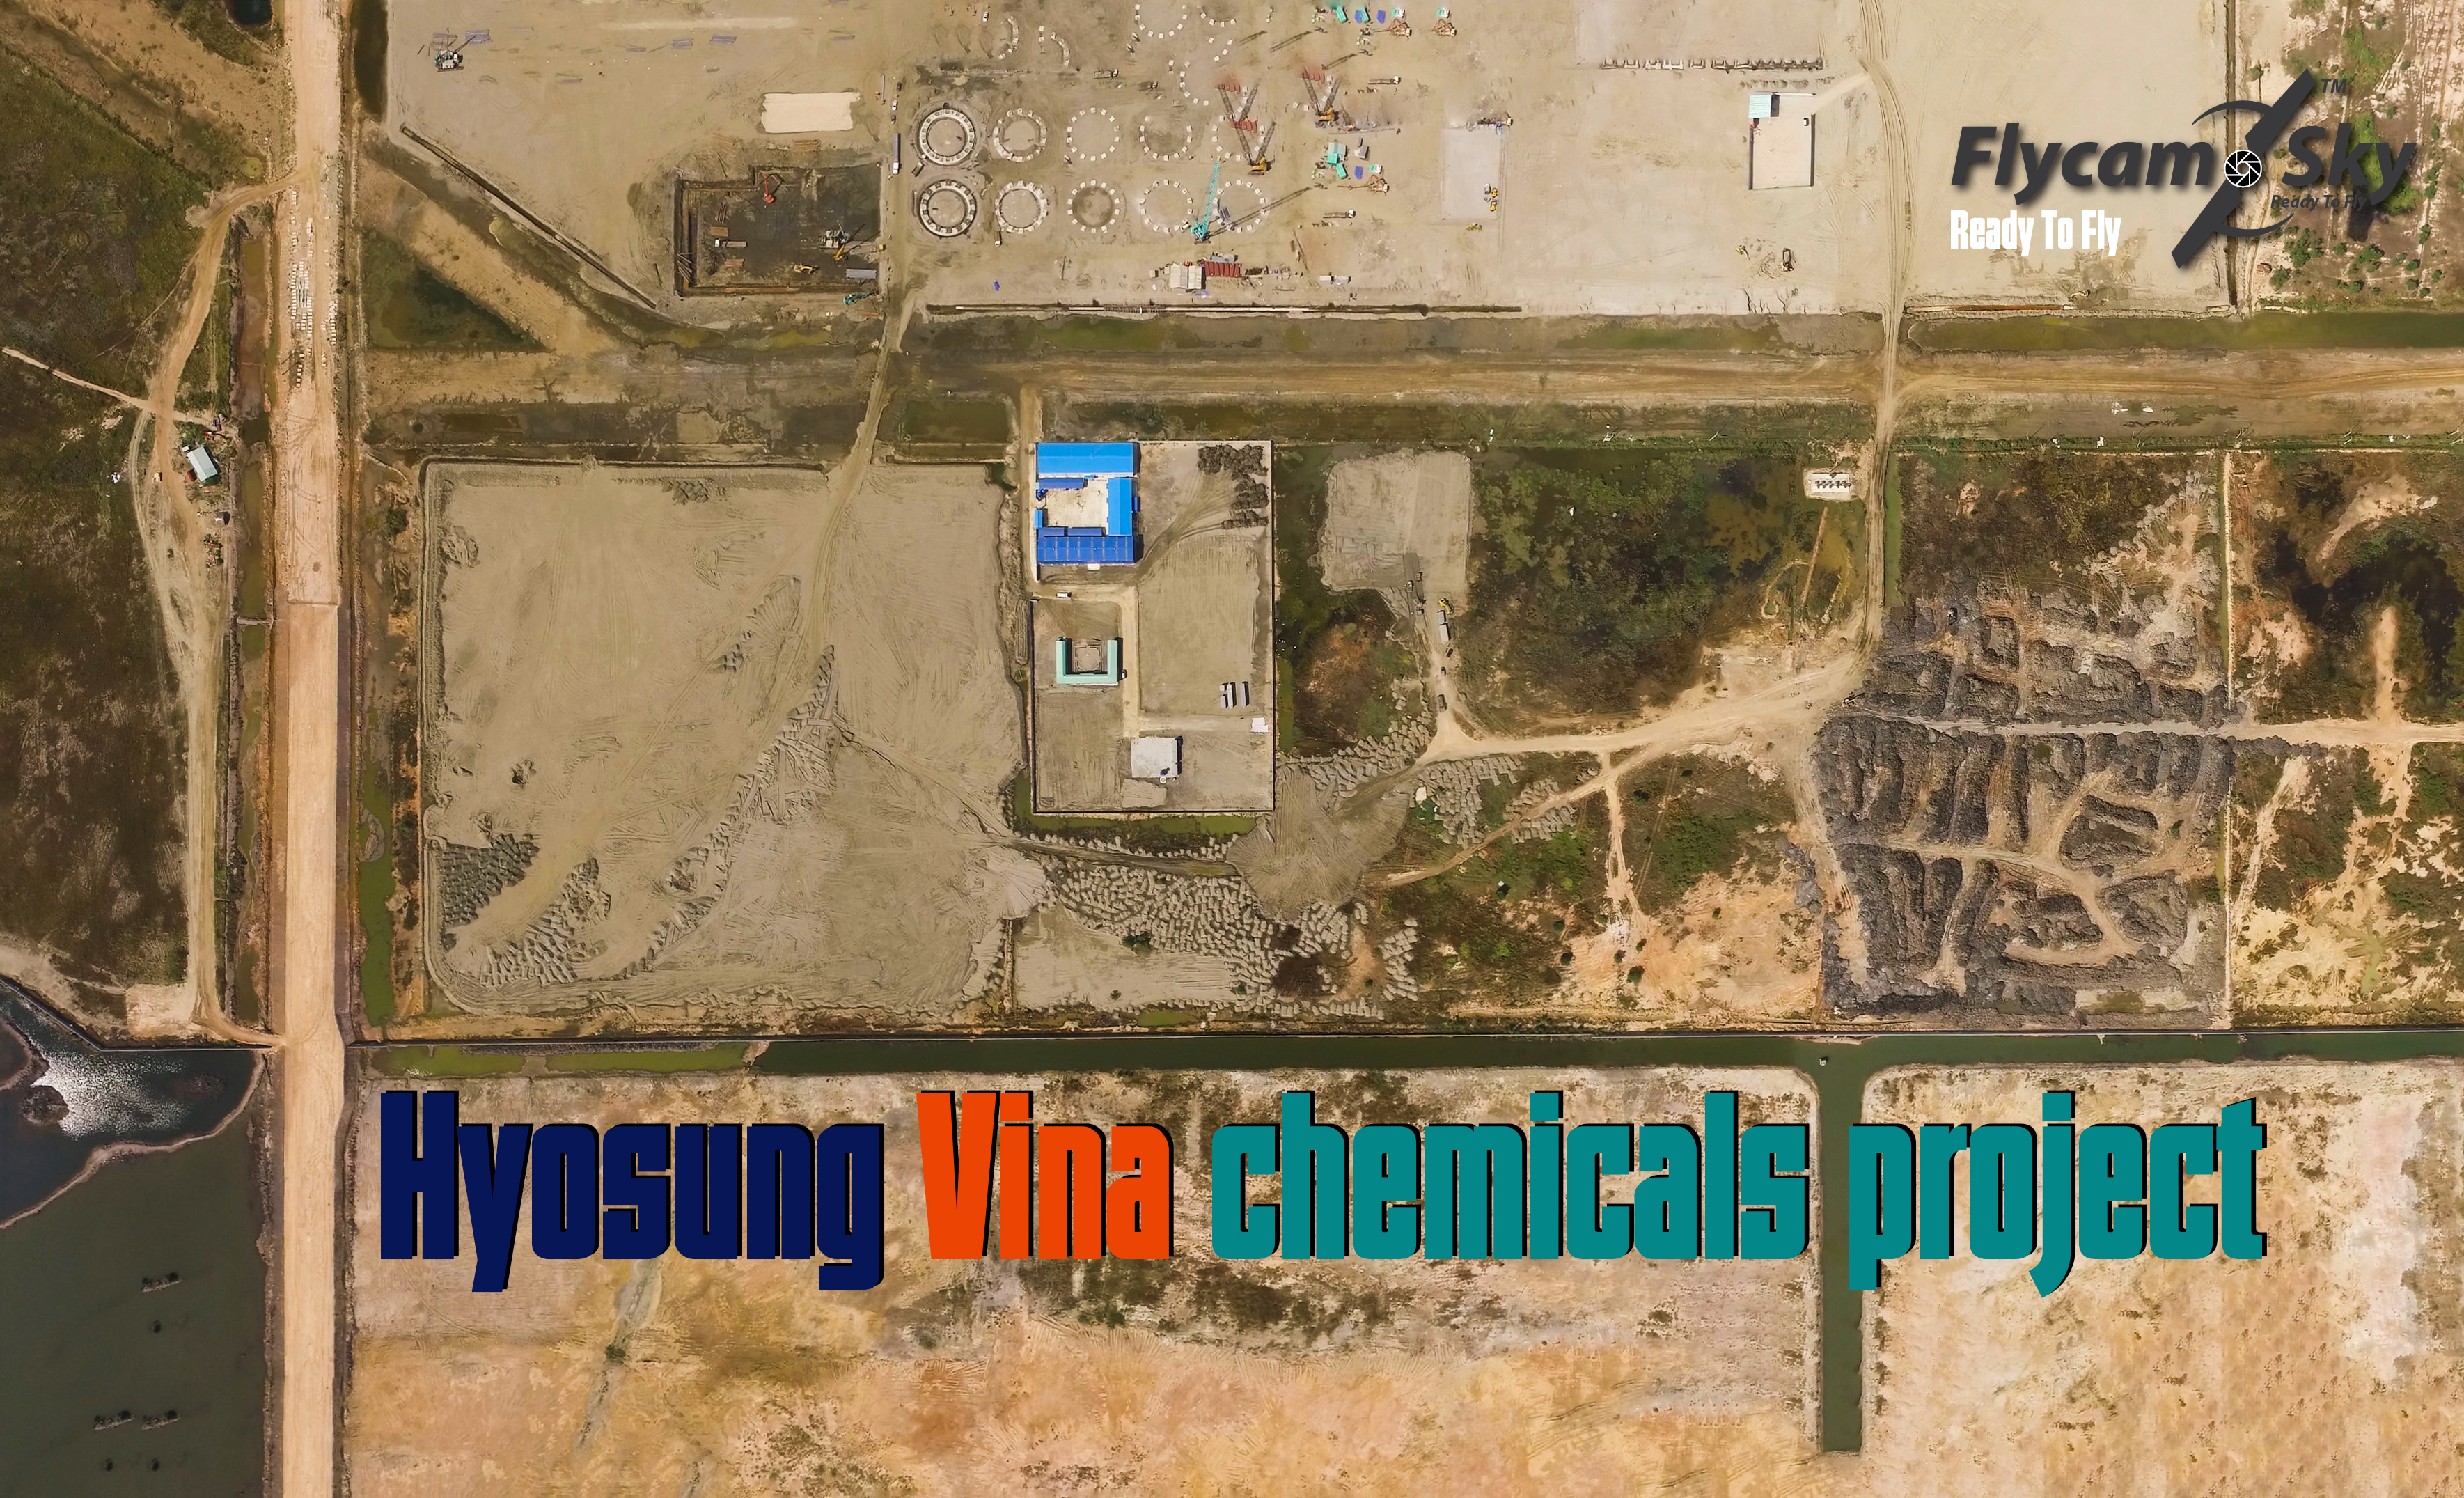 hyosung vina chemicals project